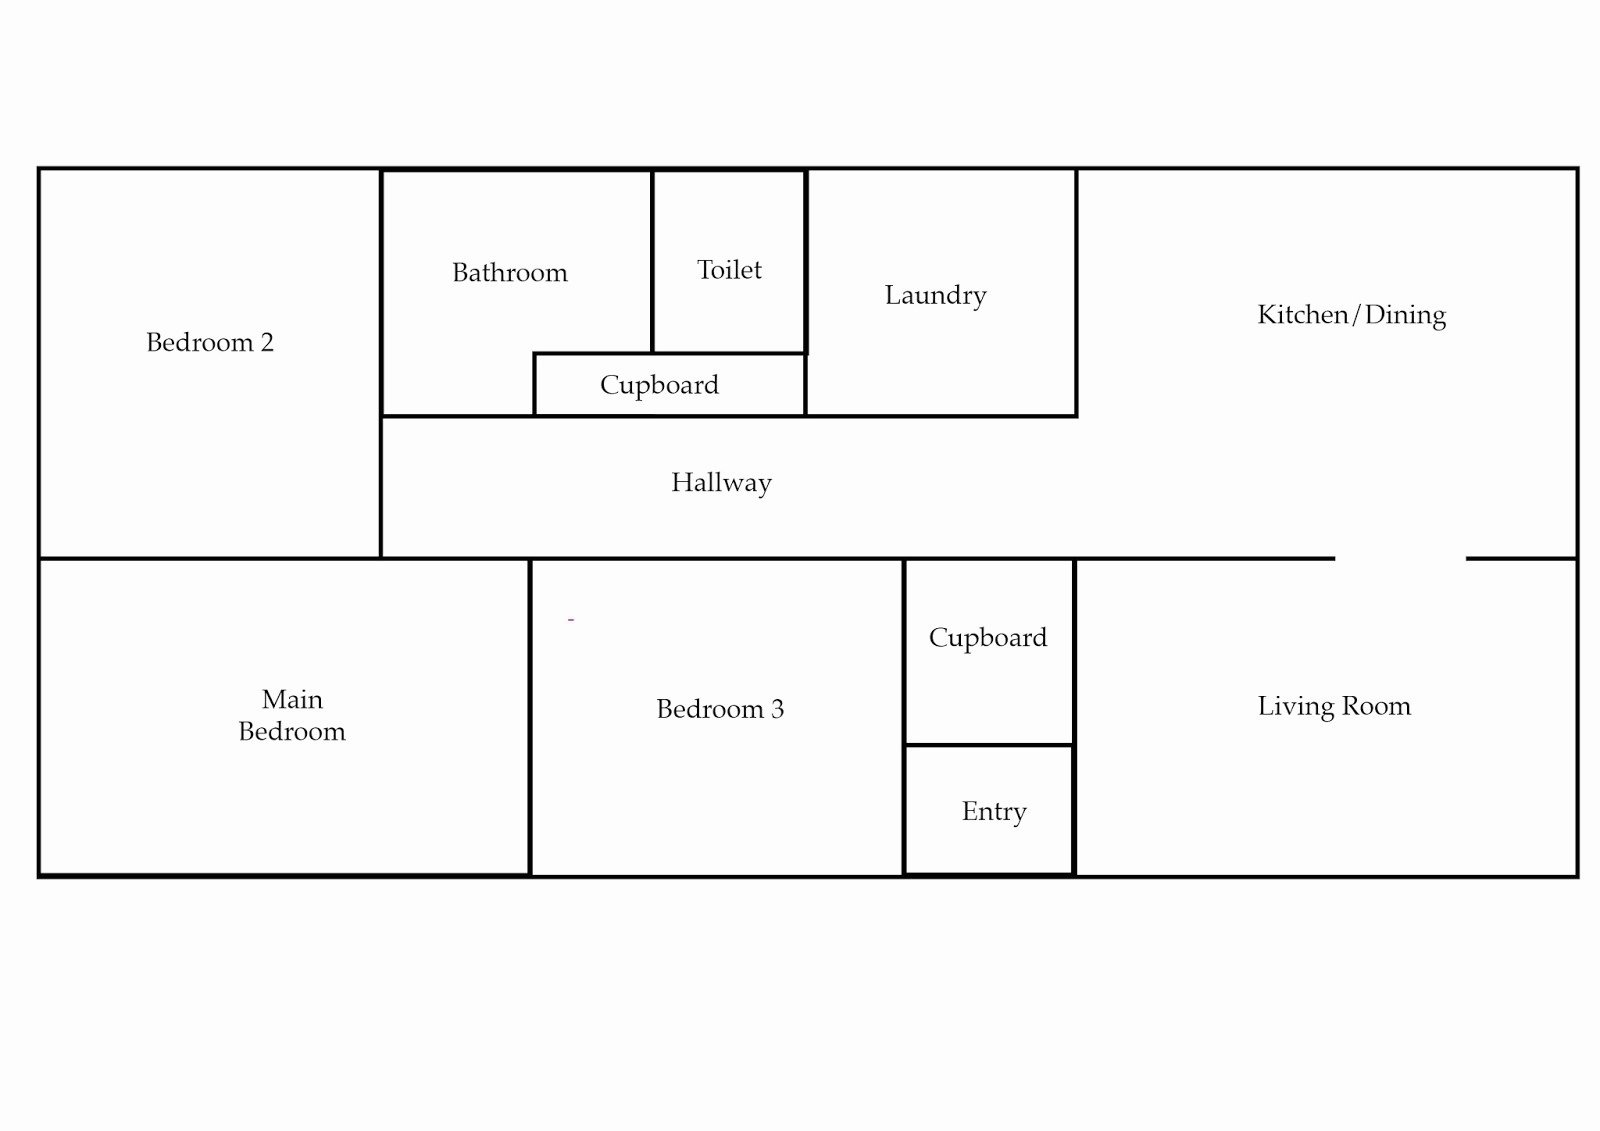 Blank Floor Plan Template Lovely Blank House Floor Plan Template Fresh Floor Plans